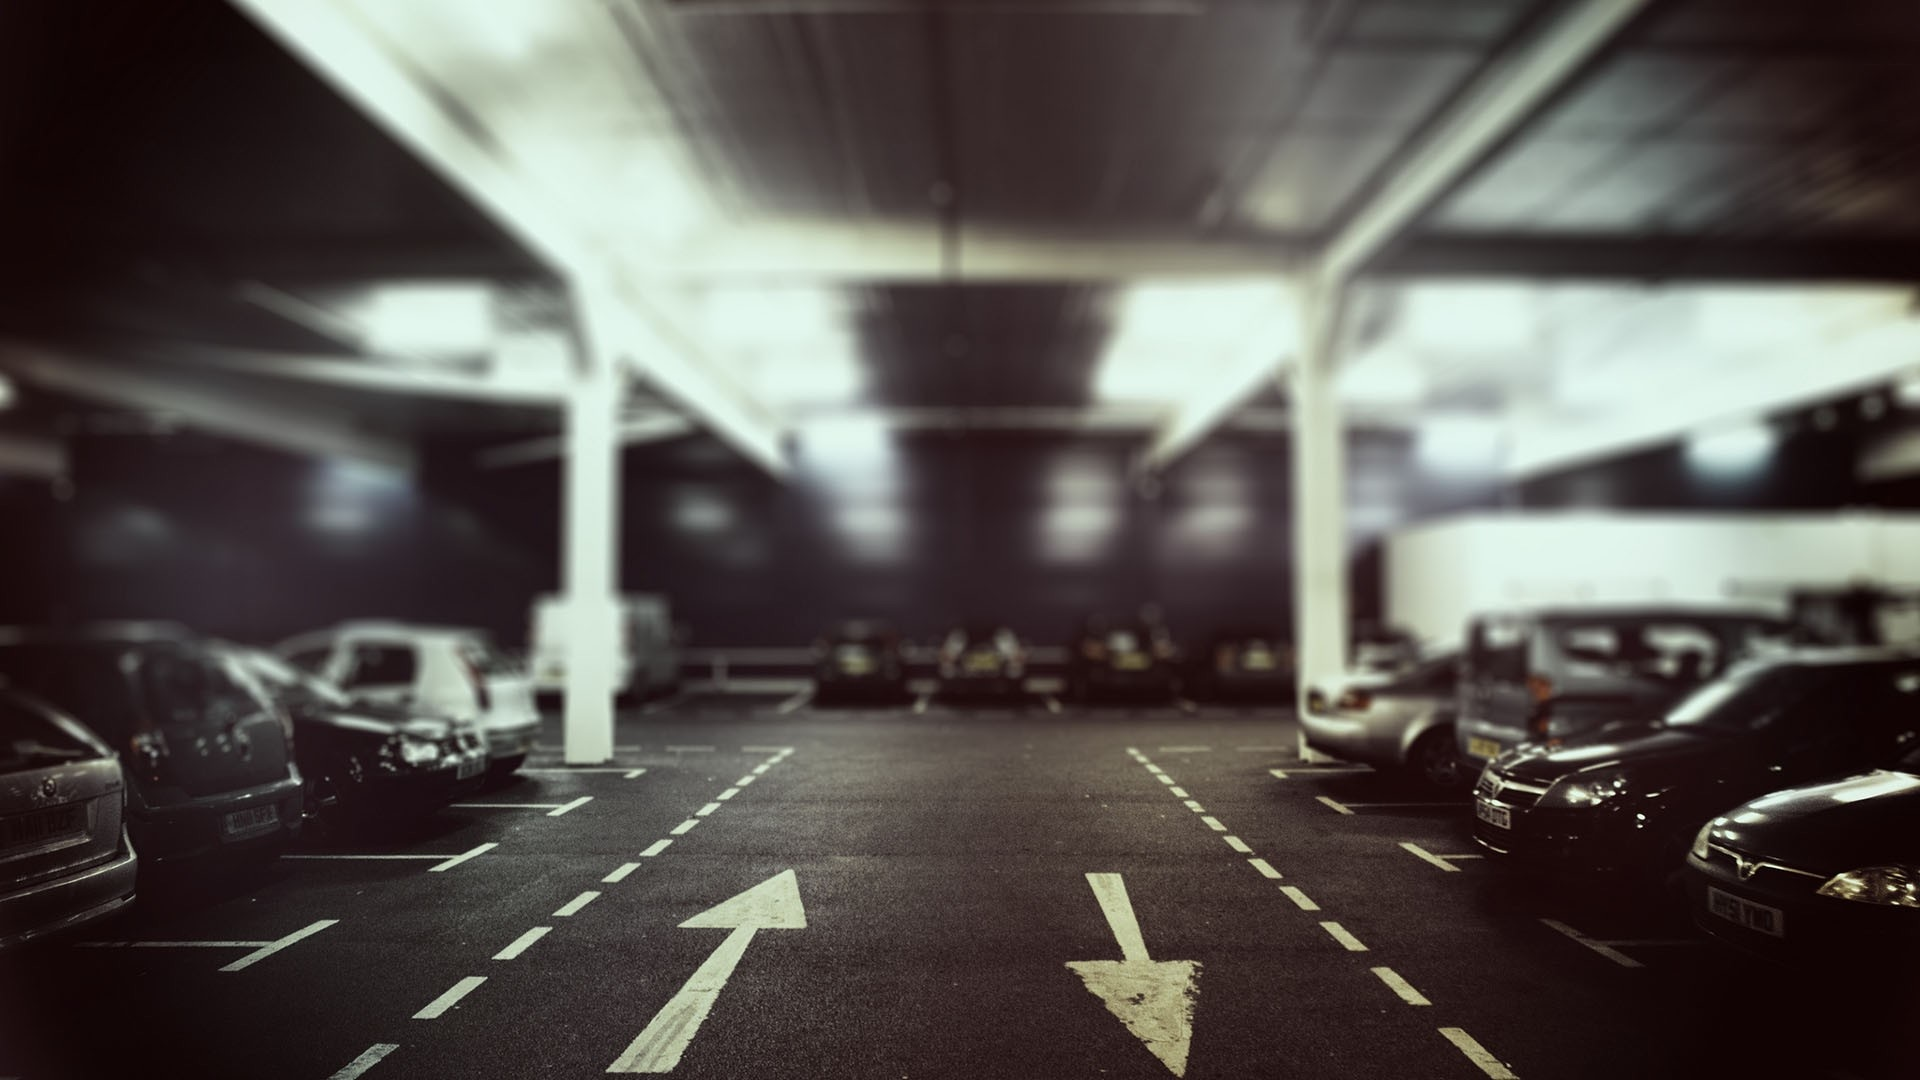 Parking Lot Wallpaper 39392 1920x1200 px